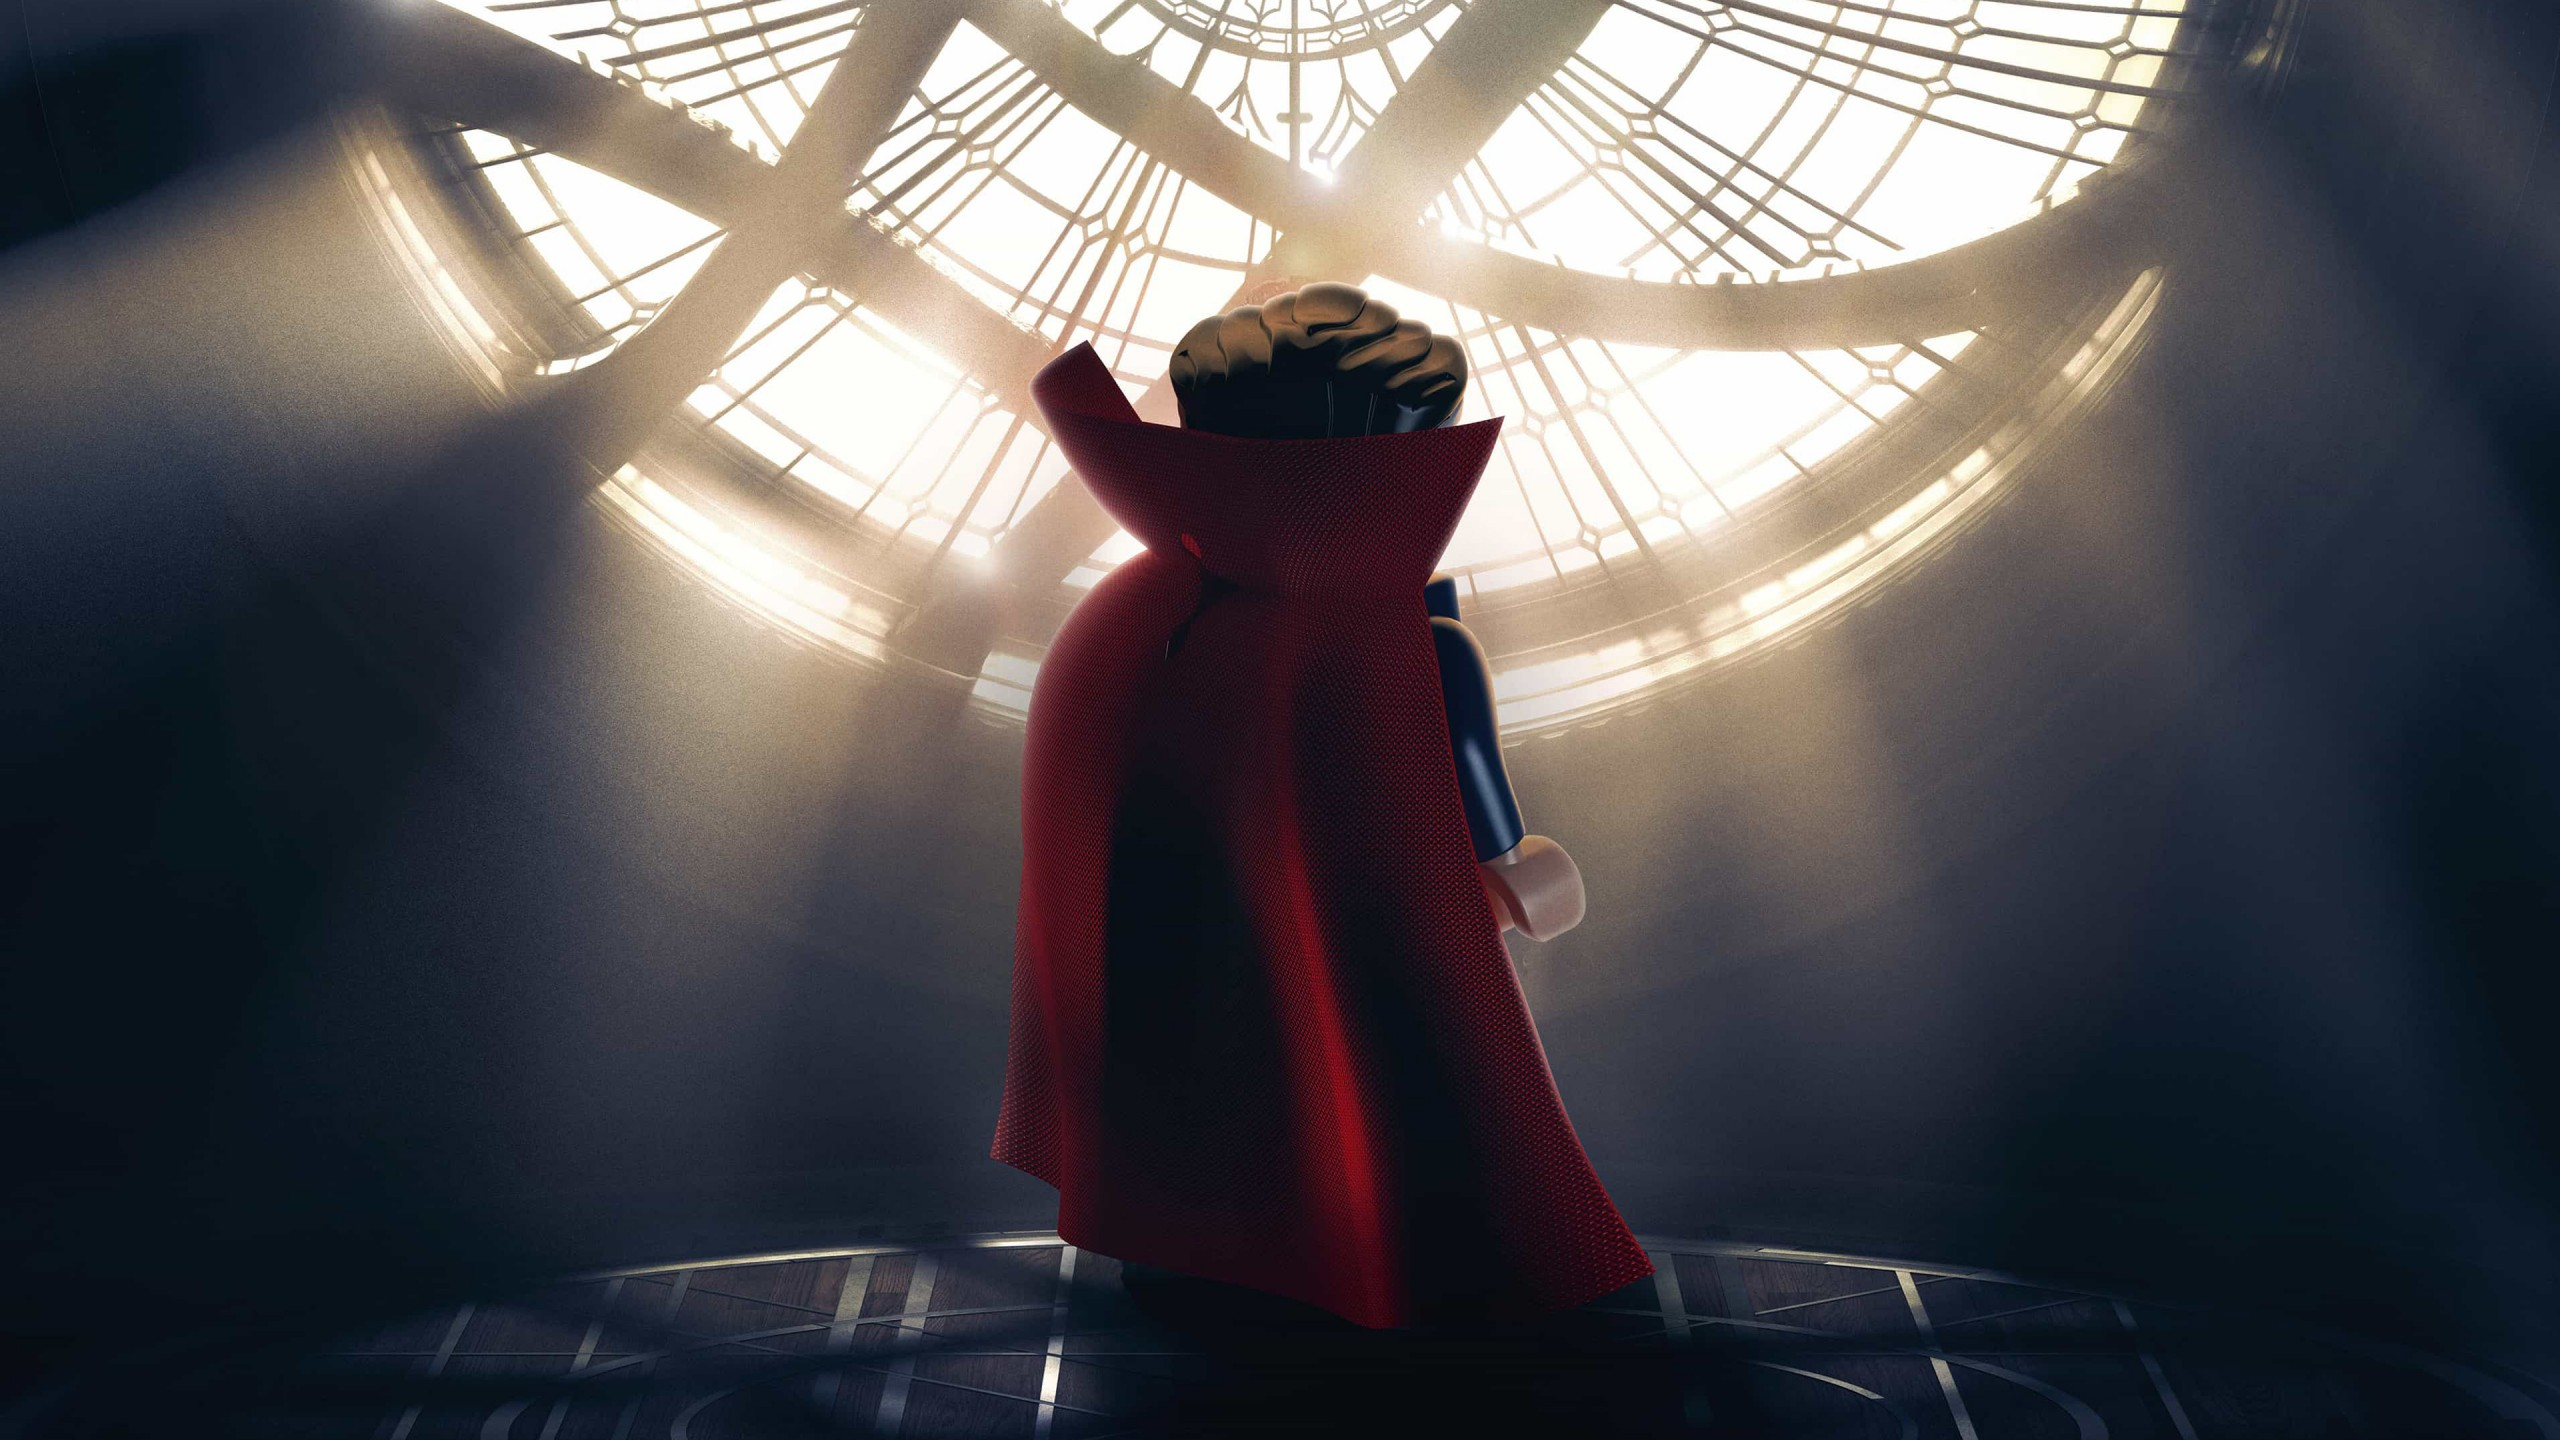 3d Superhero Wallpaper For Android Lego Doctor Strange 4k Wallpapers Hd Wallpapers Id 19755